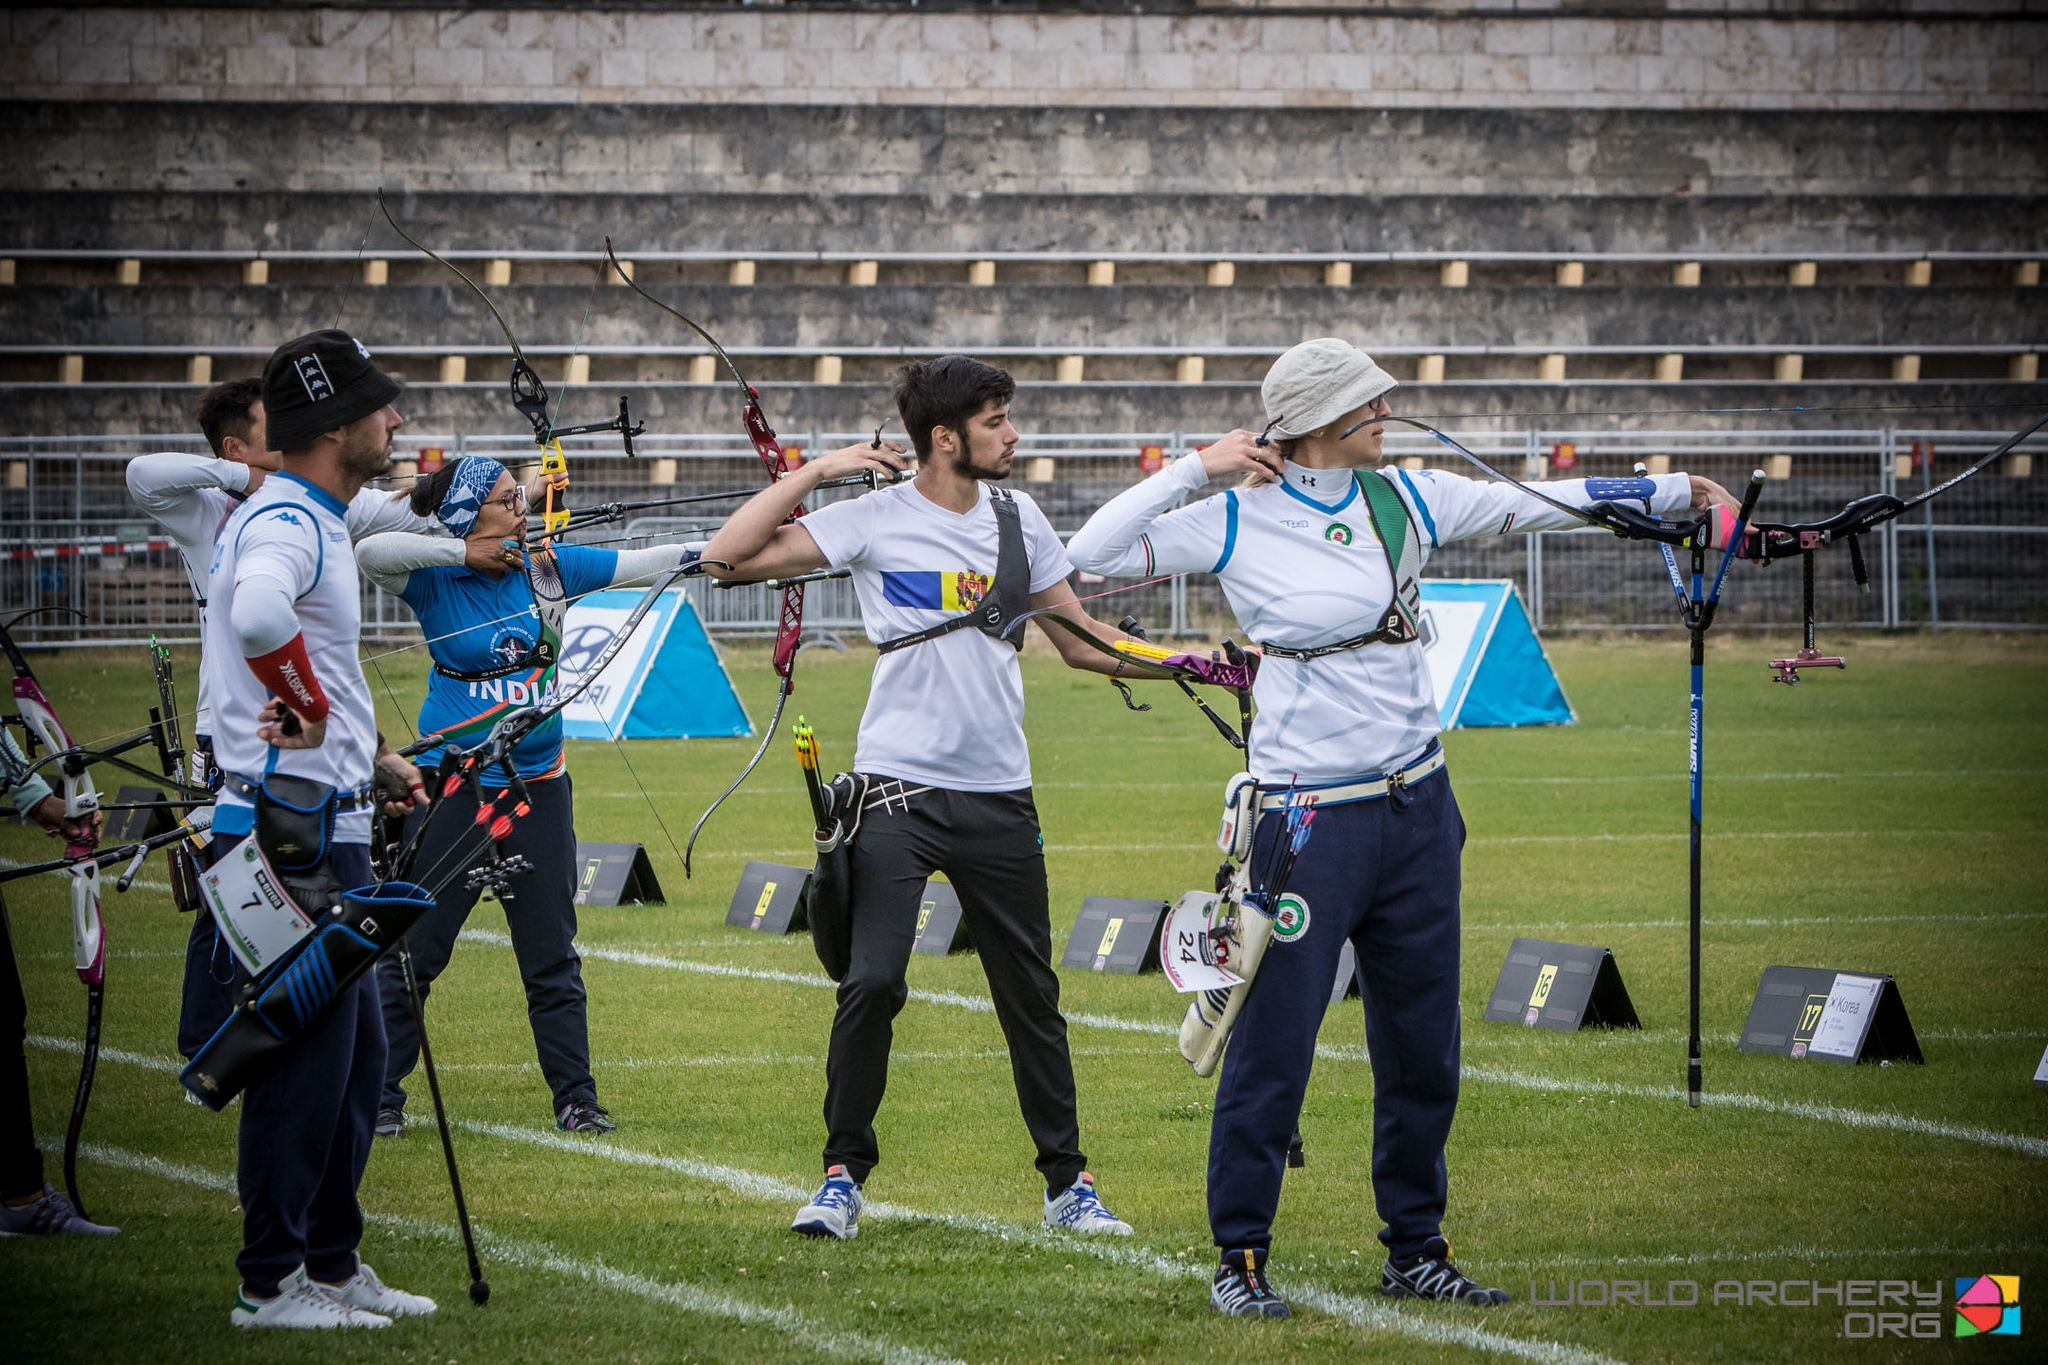 Moldova pair earn their country first gold medal match at Archery World Cup in Berlin